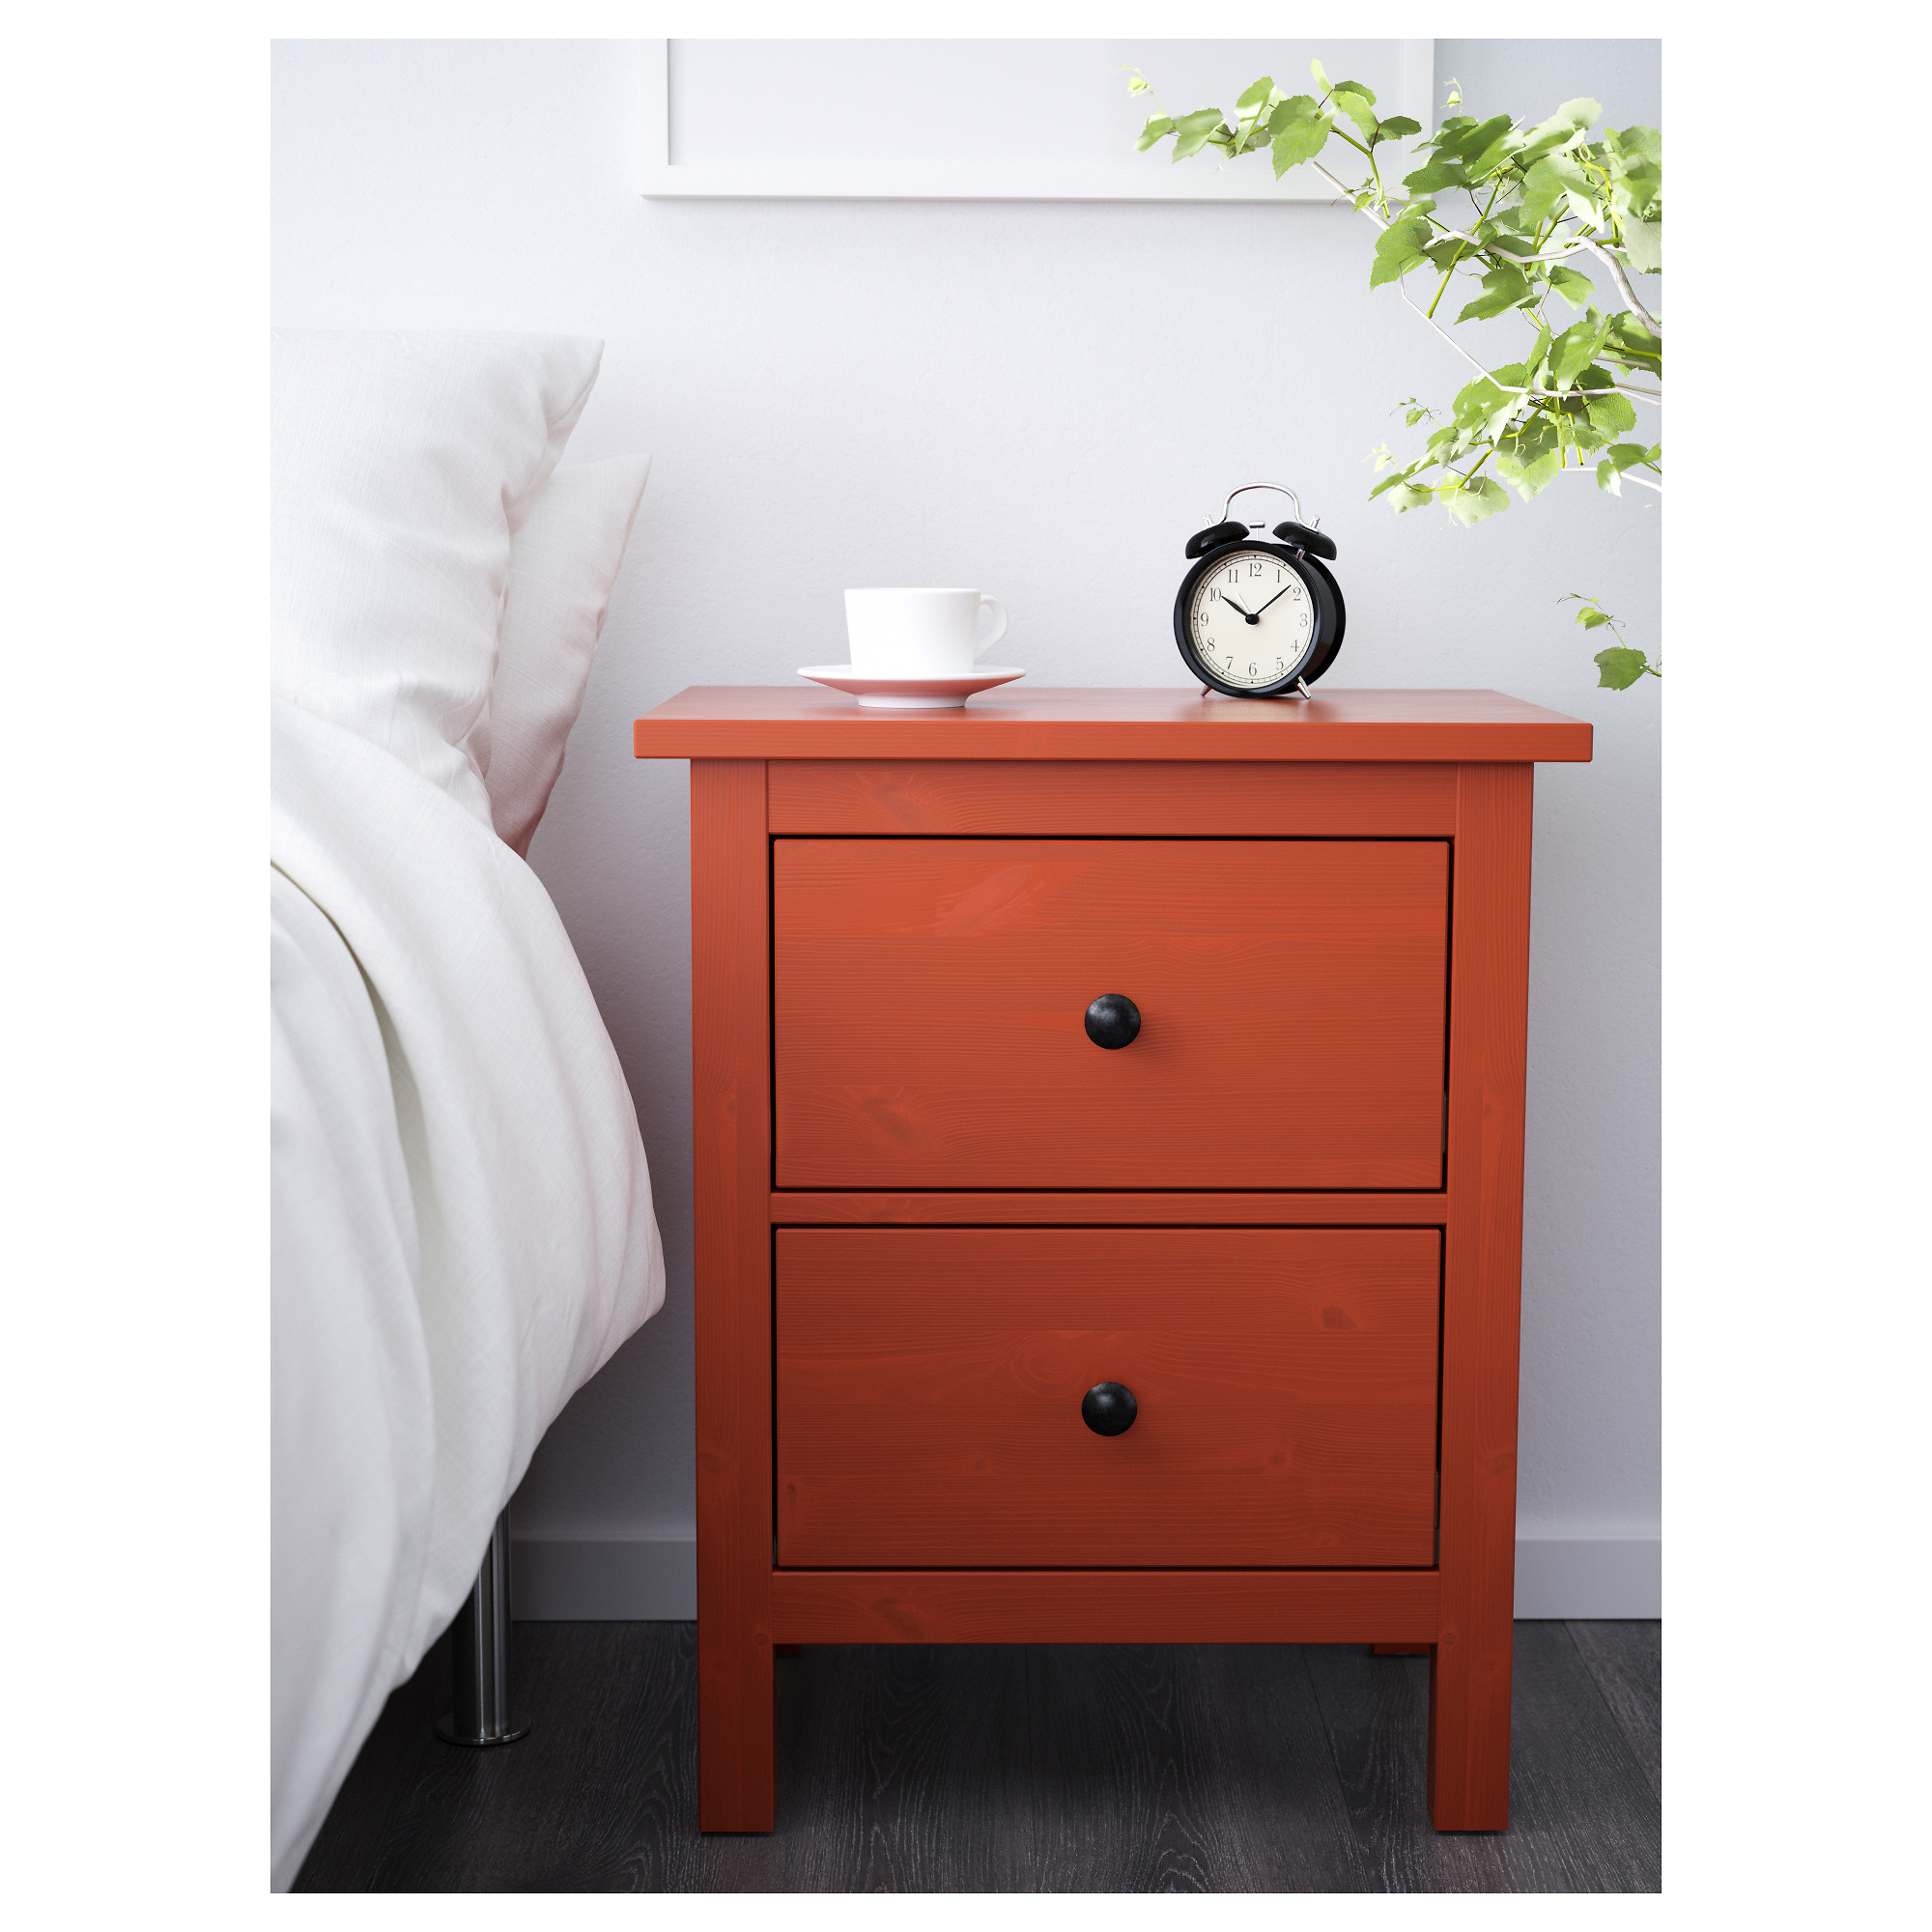 dresser and nightstand set ikea bestdressers 2017. Black Bedroom Furniture Sets. Home Design Ideas